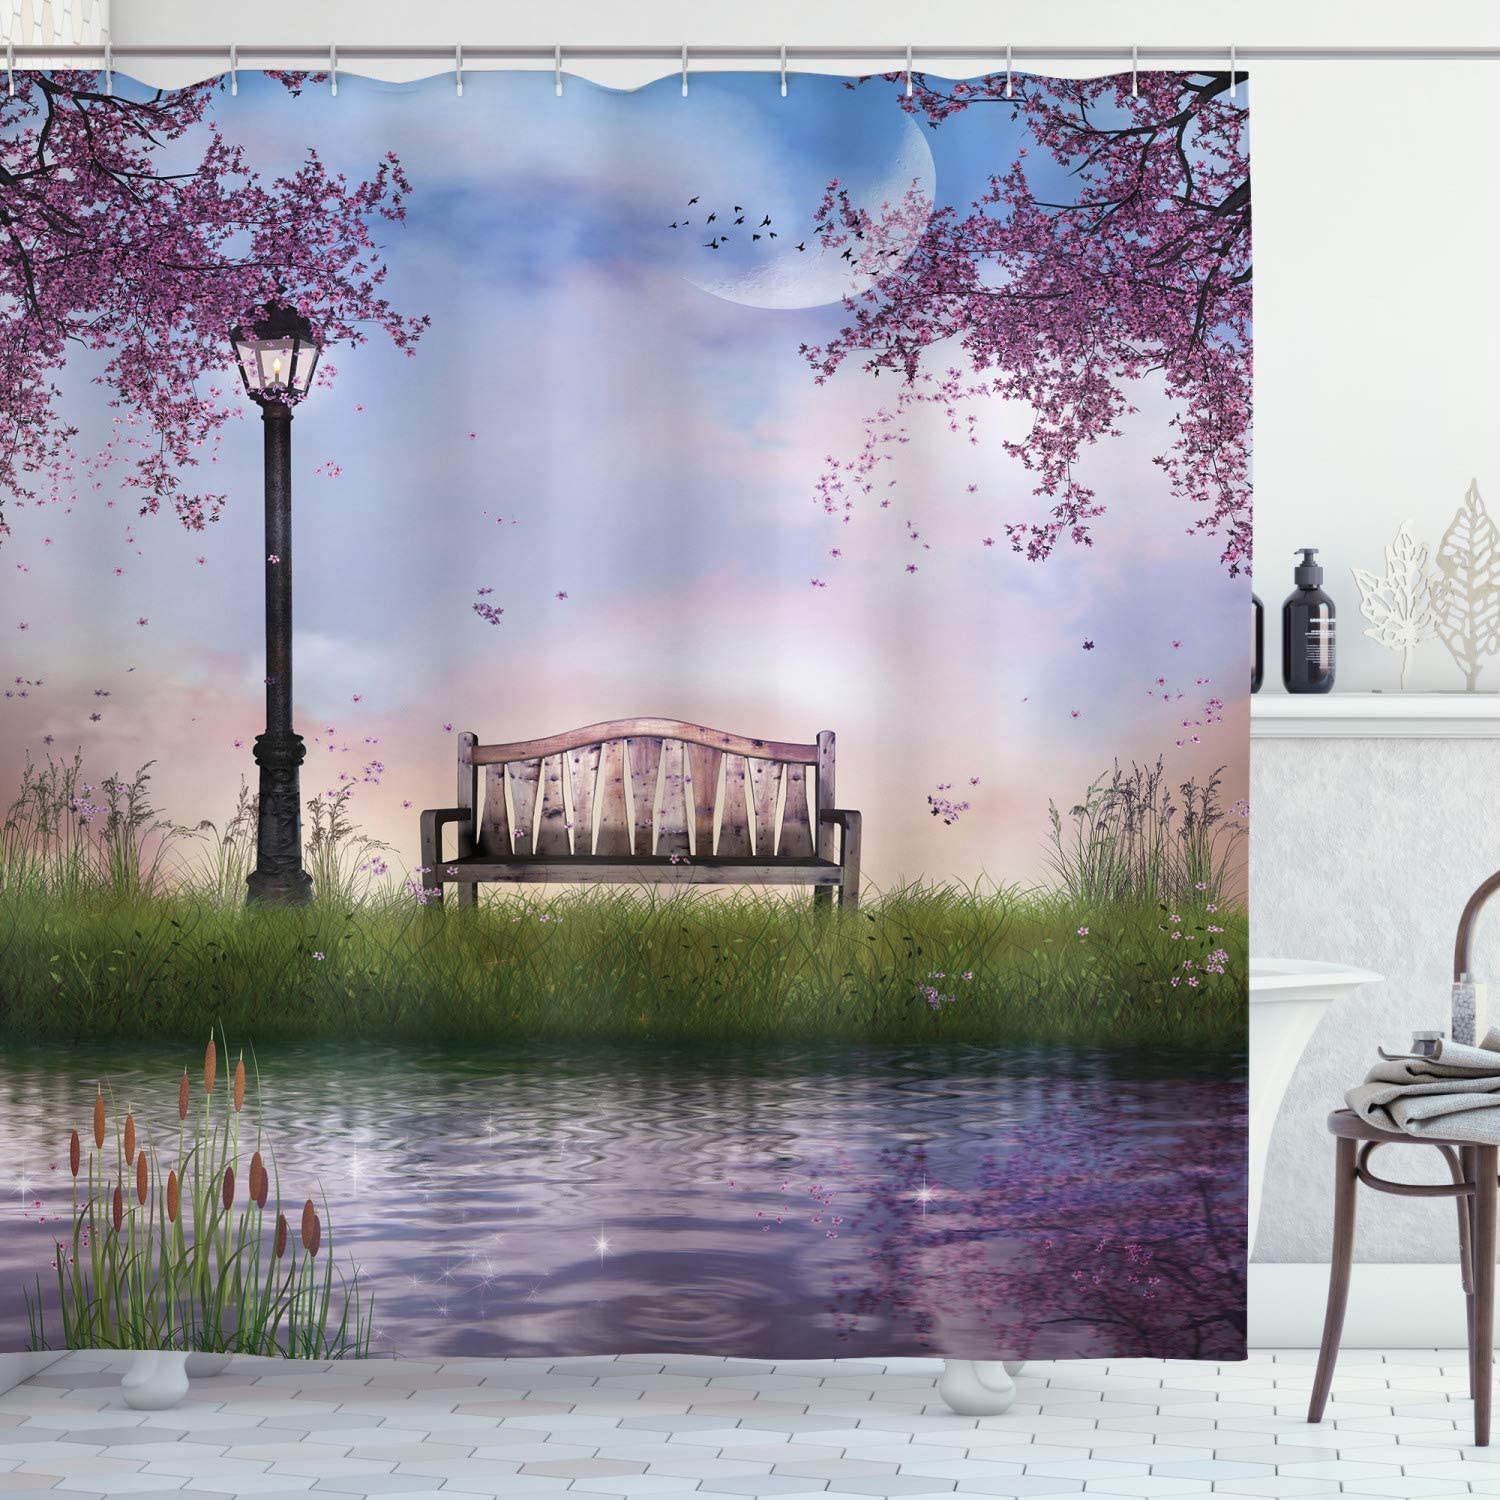 Ambesonne Nature Shower Curtain, Bench on Flowing River with Crescent Moon Lavender Trees and Grass Illustration, Cloth Fabric Bathroom Decor Set with Hooks, 70